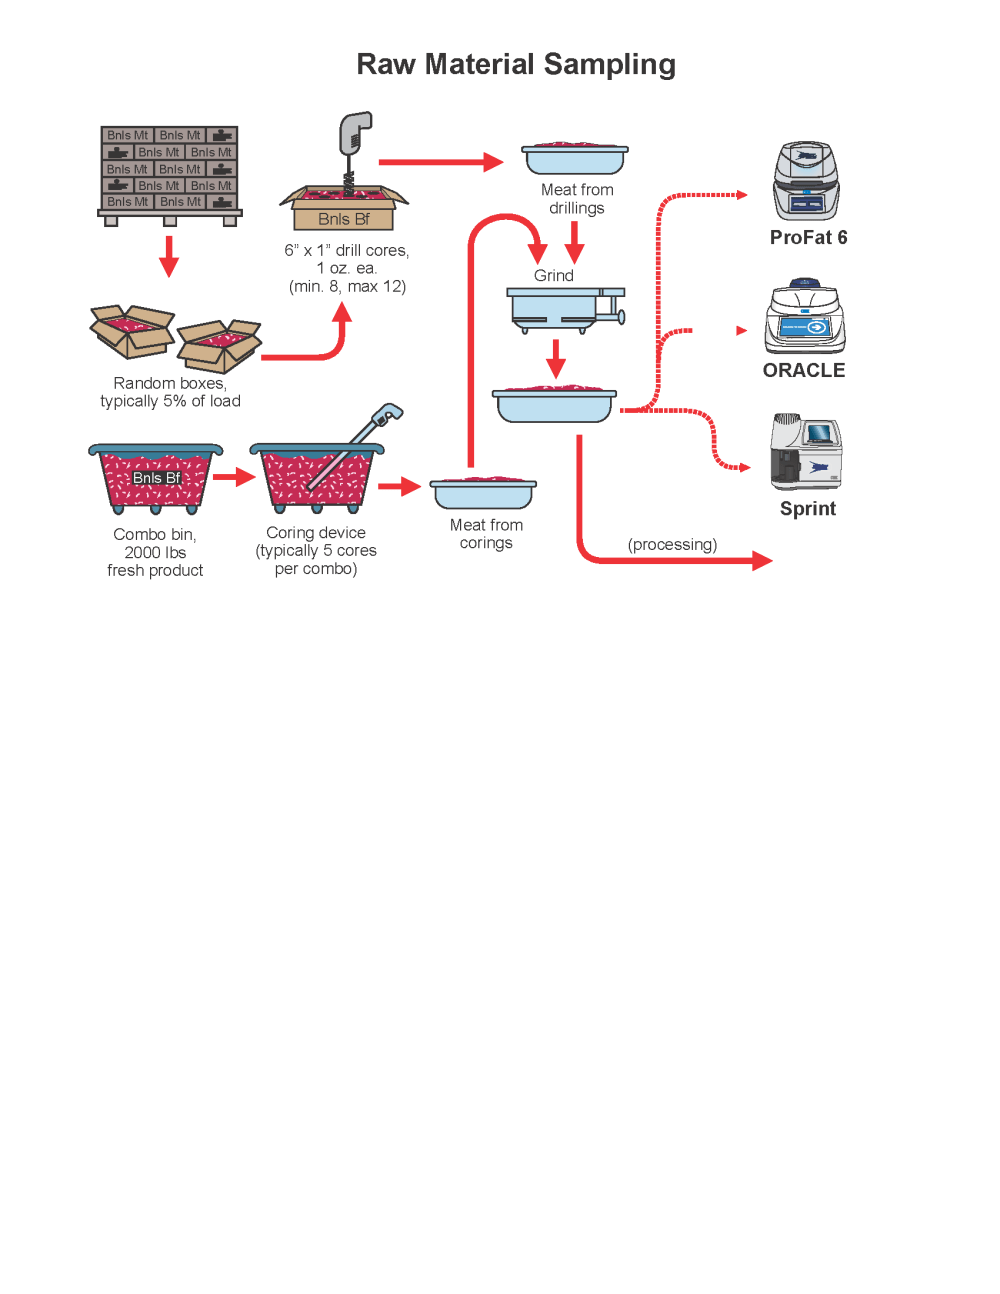 medium resolution of the raw material flow chart gives precise details on raw material sampling as well as an explanation of where cem process products can be implemented to